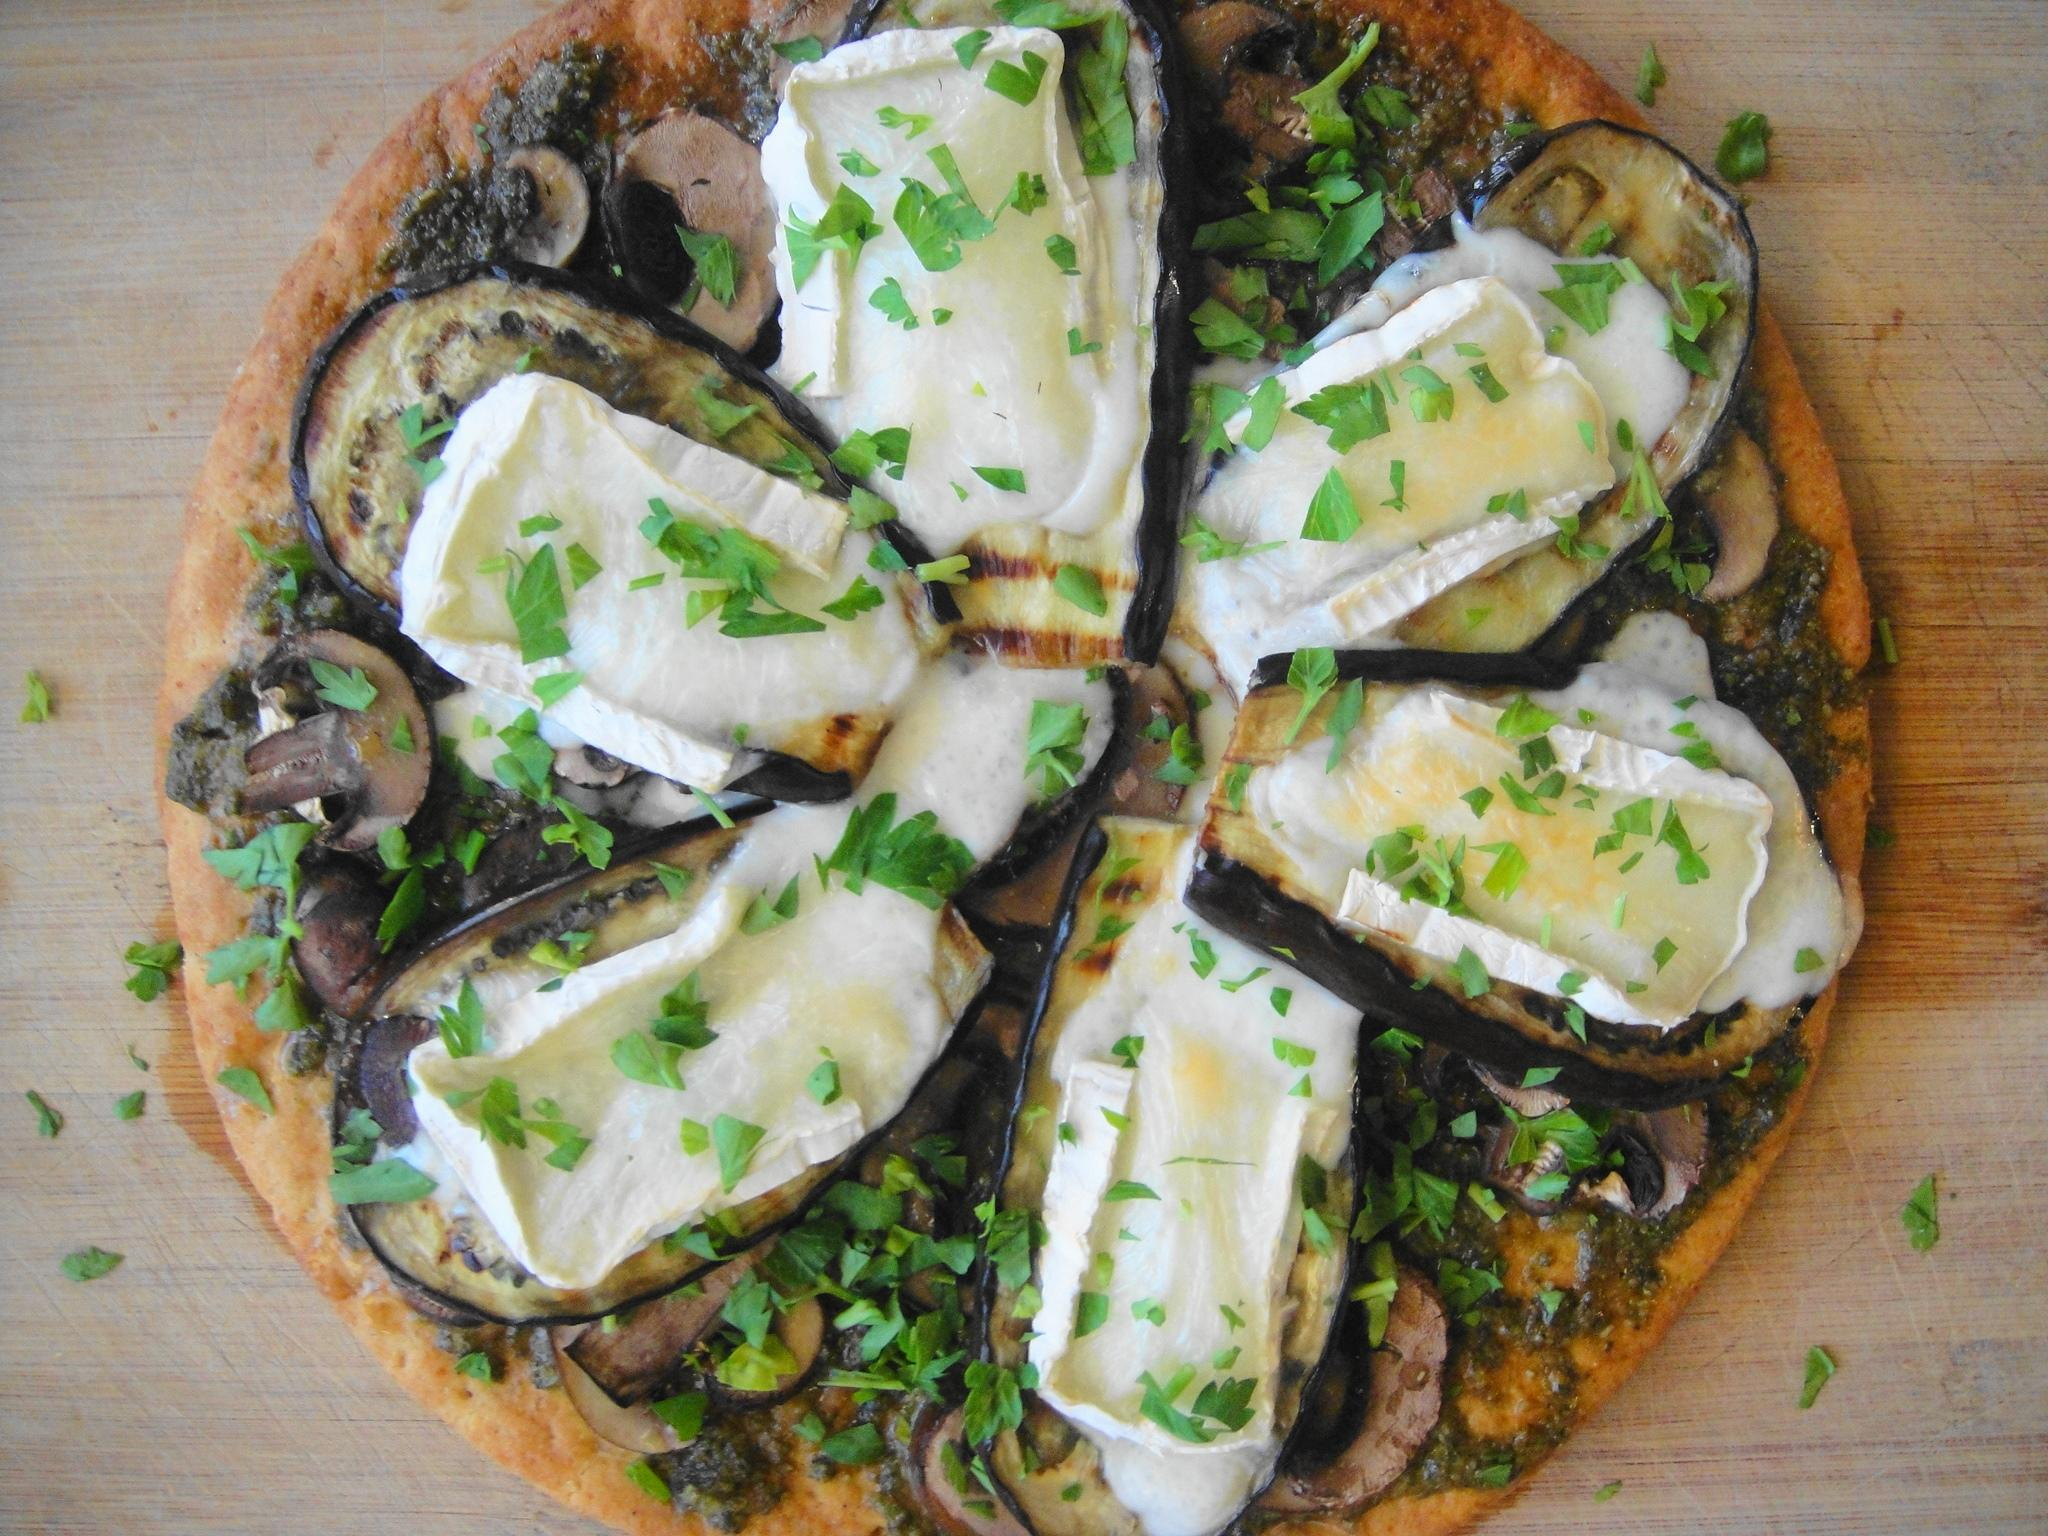 Pesto Eggplant Brie Pizza with Truffle Oil